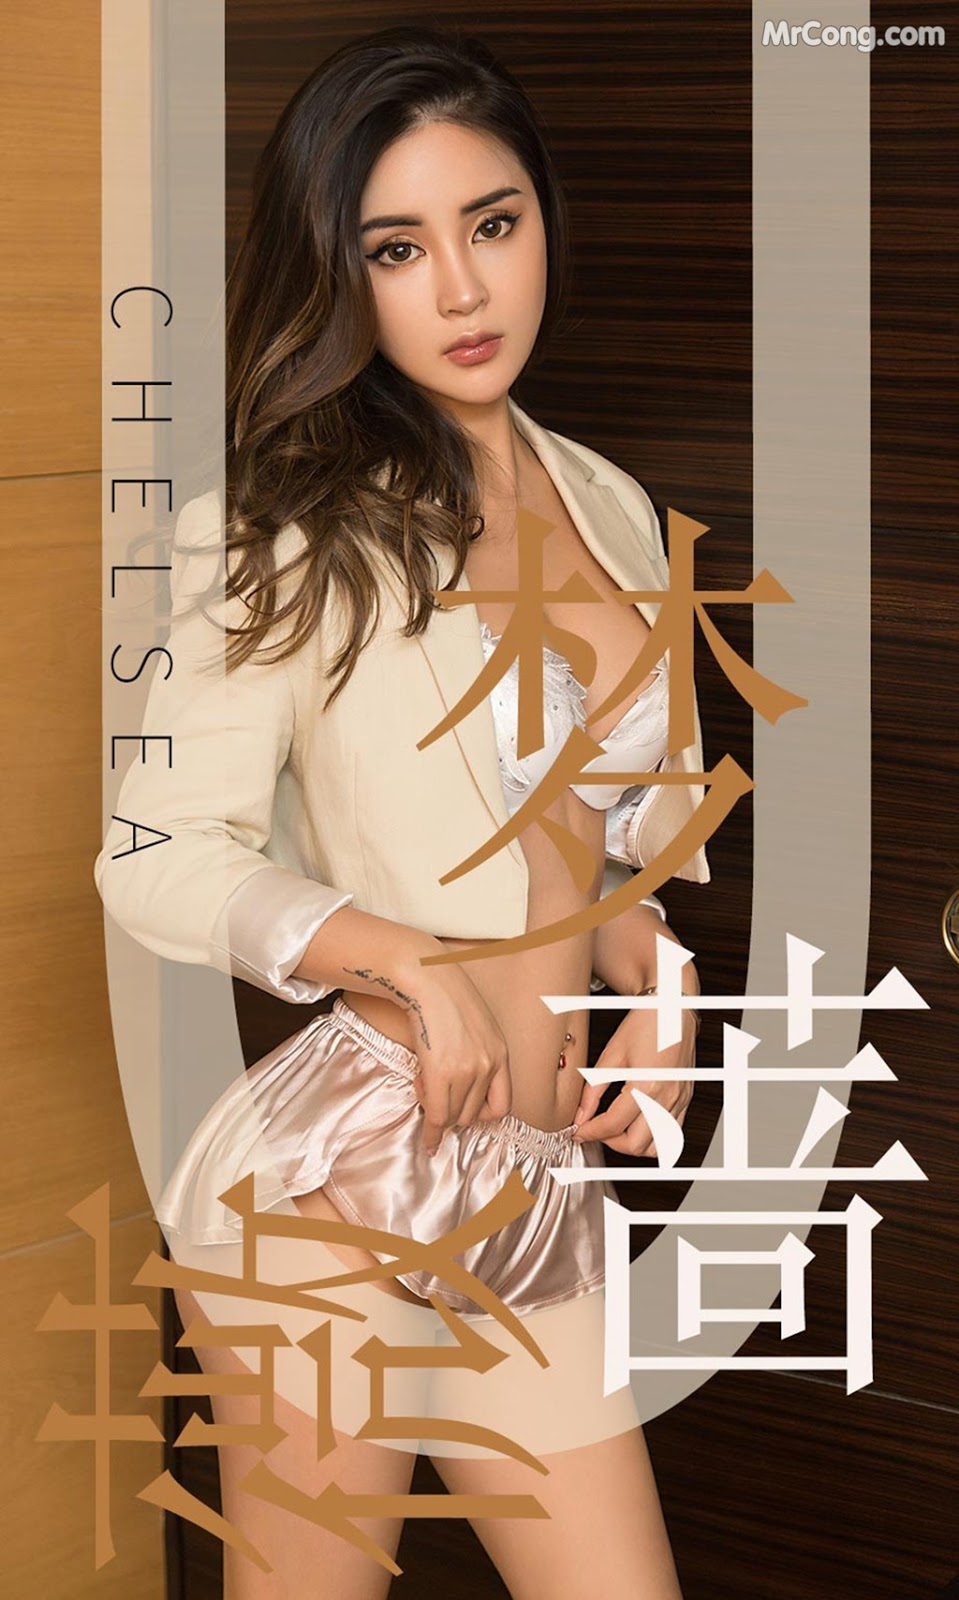 UGIRLS - Ai You Wu App No.1478: 梦 蔷薇 (35 pictures)